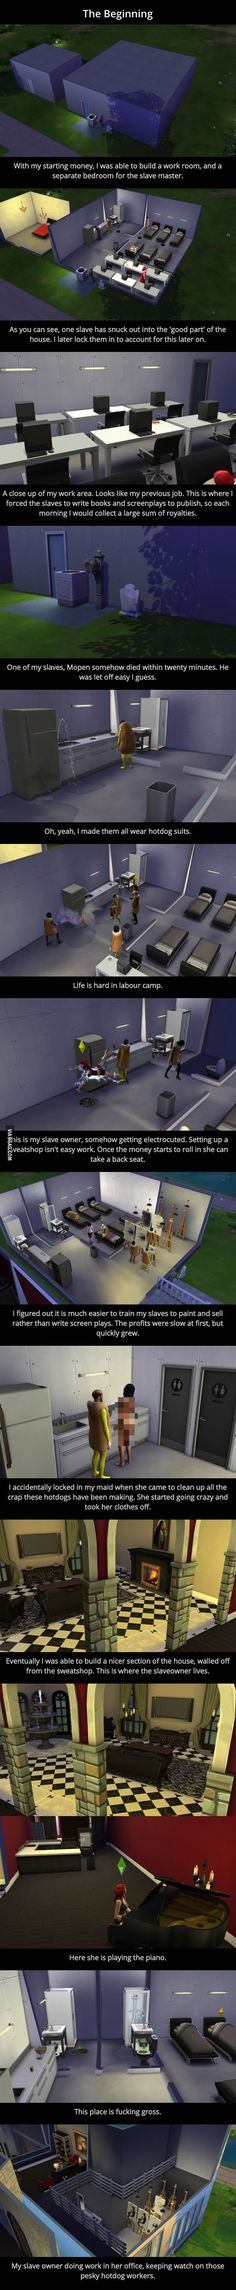 The Sims Sweatshop - 9GAG